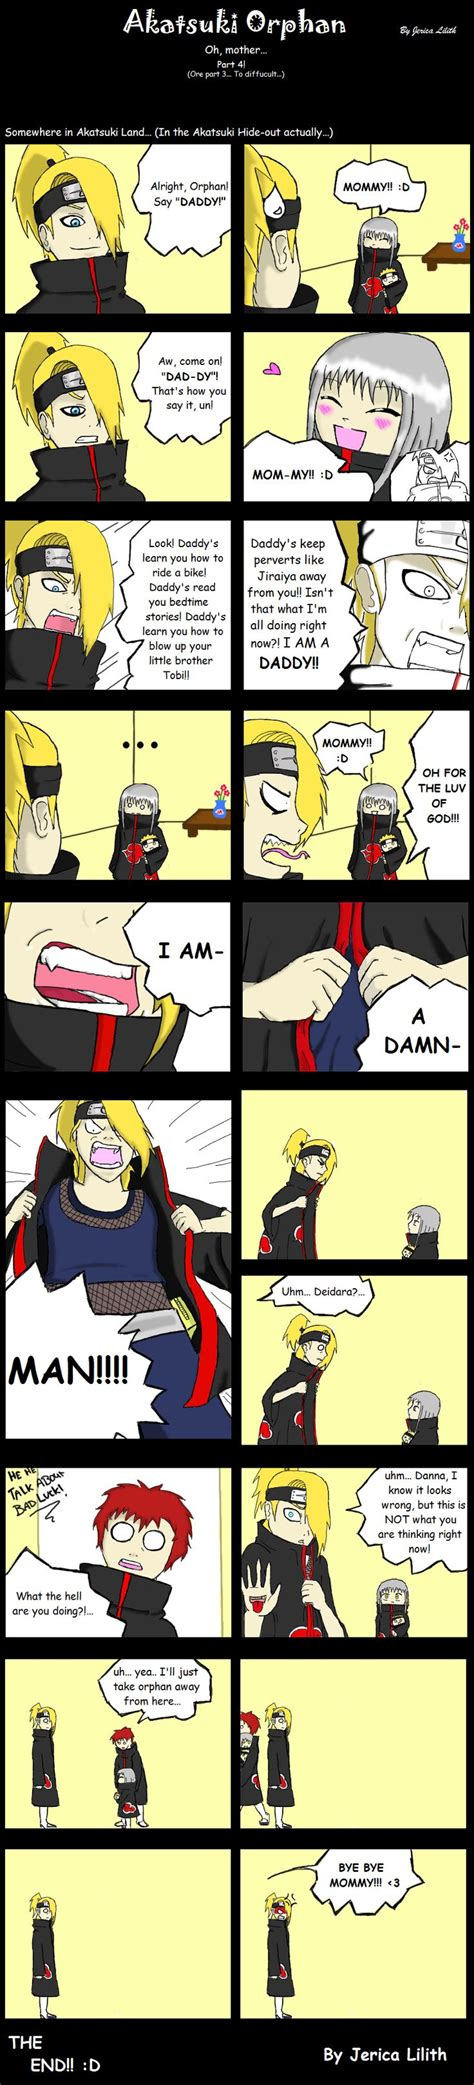 Komik Poor Prince 1 14 End 14 best images about on